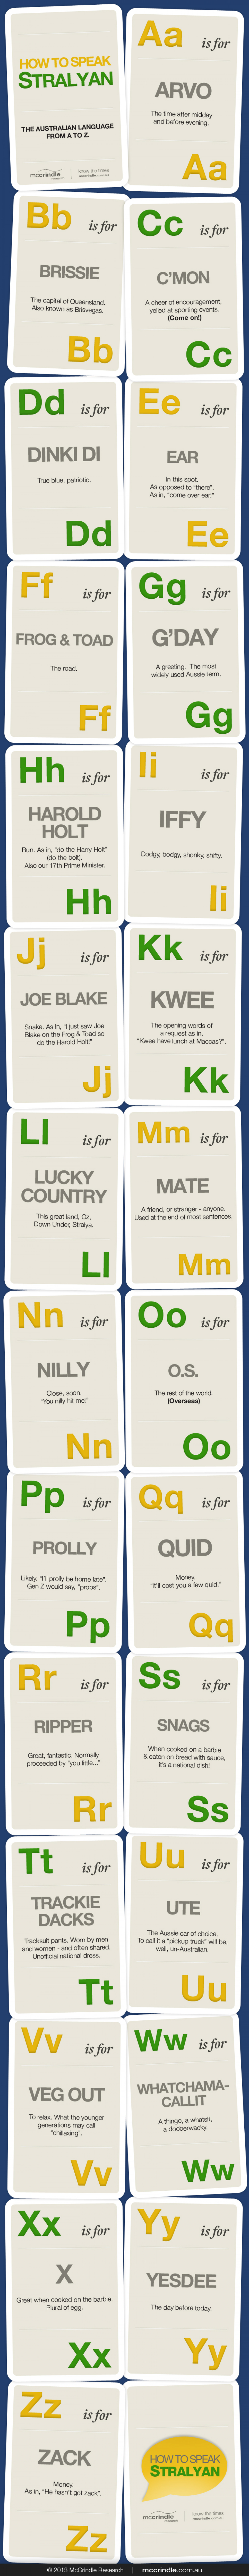 How to speak Stralyan: The Australian language from A to Z Infographic